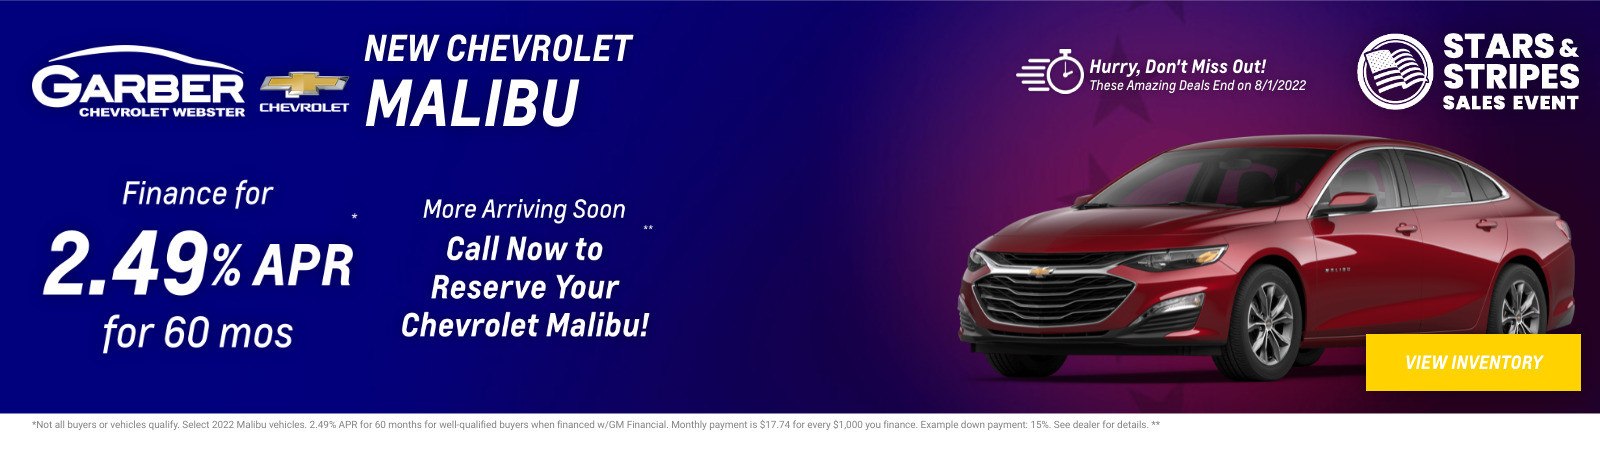 New Chevrolet Malibu Current Deals and Offers in Rochester, NY